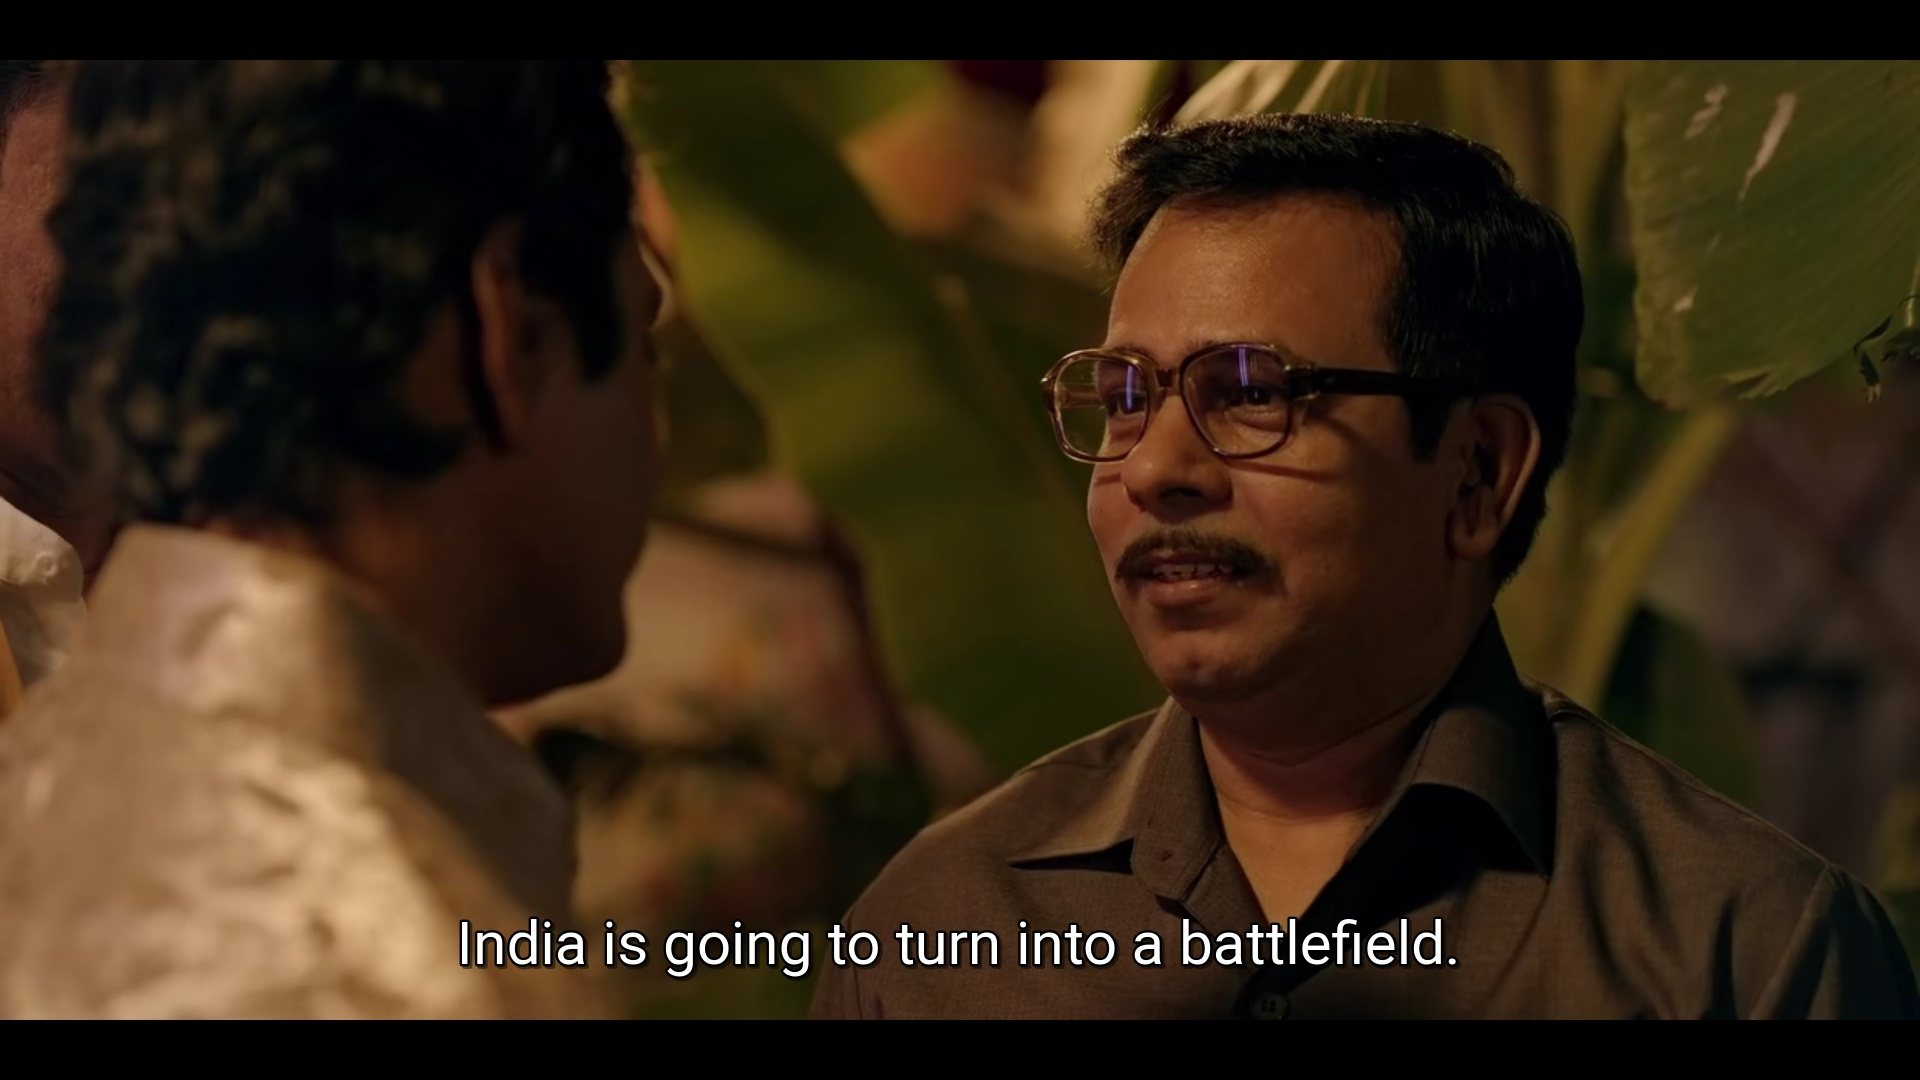 What is the ending of sacred games? - Quora